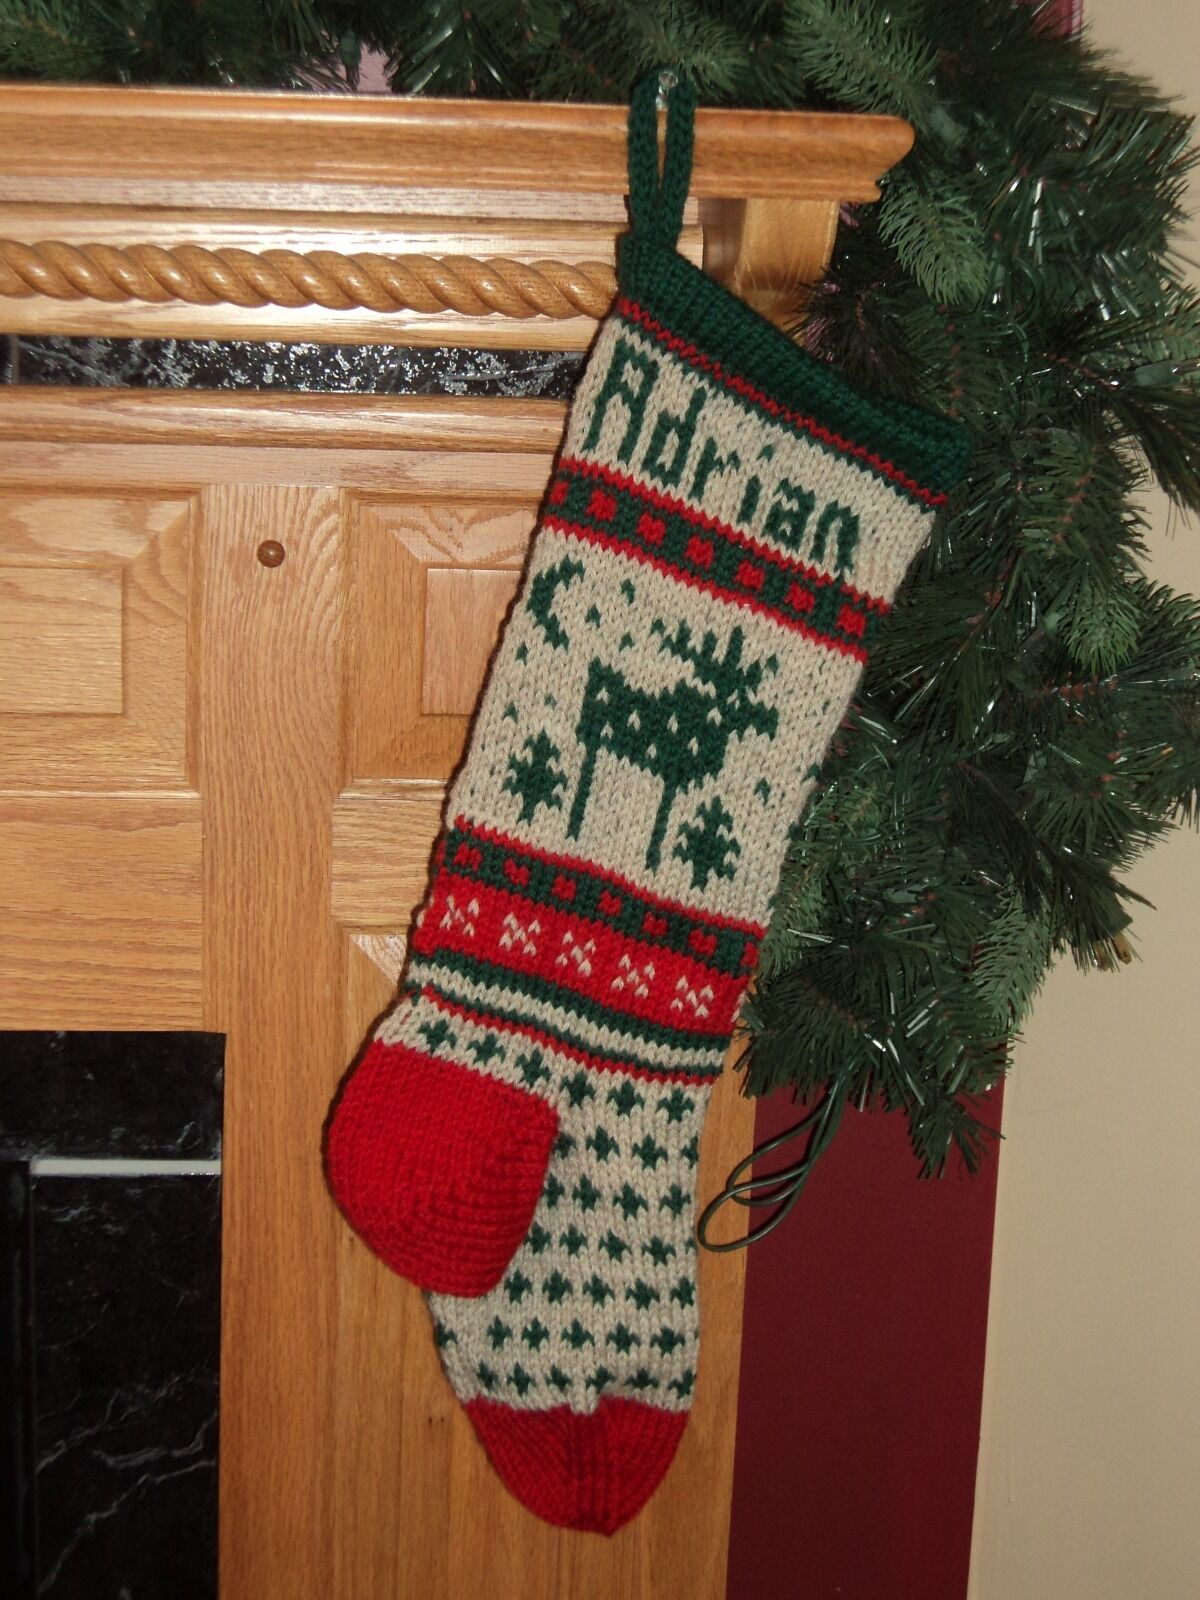 1 of 1only 1 available - Moose Christmas Stocking